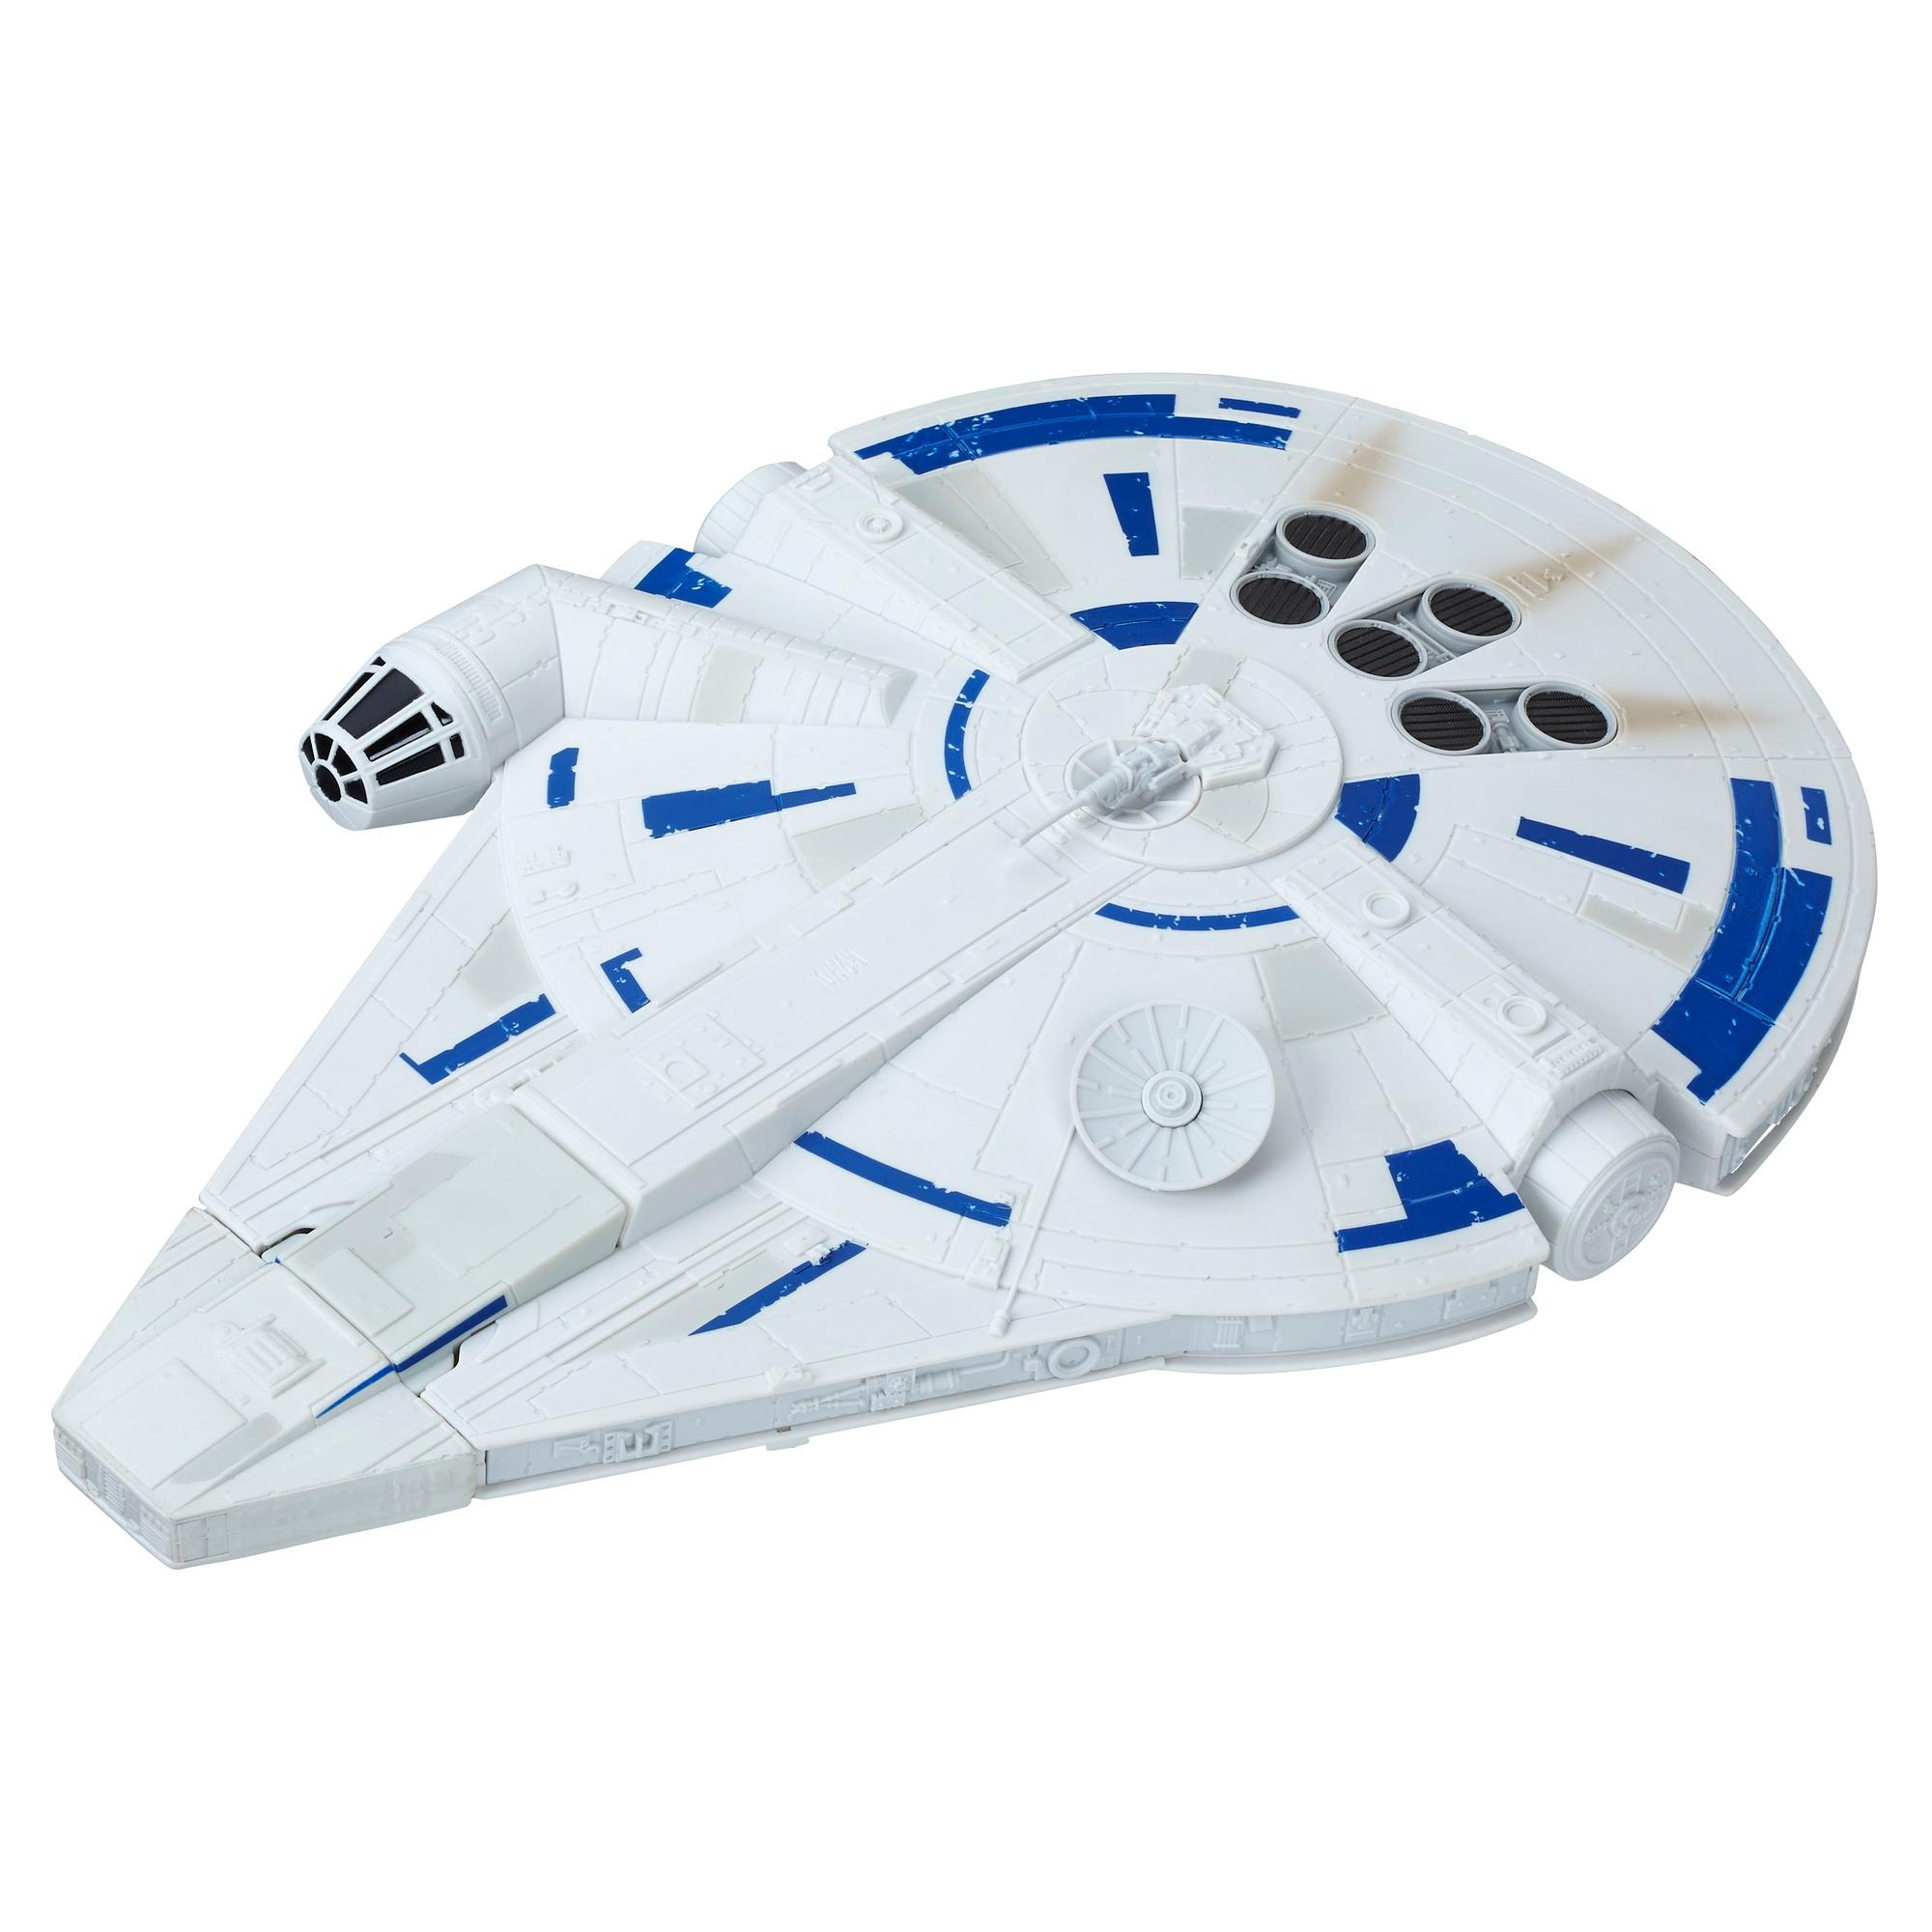 Star Wars - Millennium Falcon con Scialuppa (Force Link 2.0)